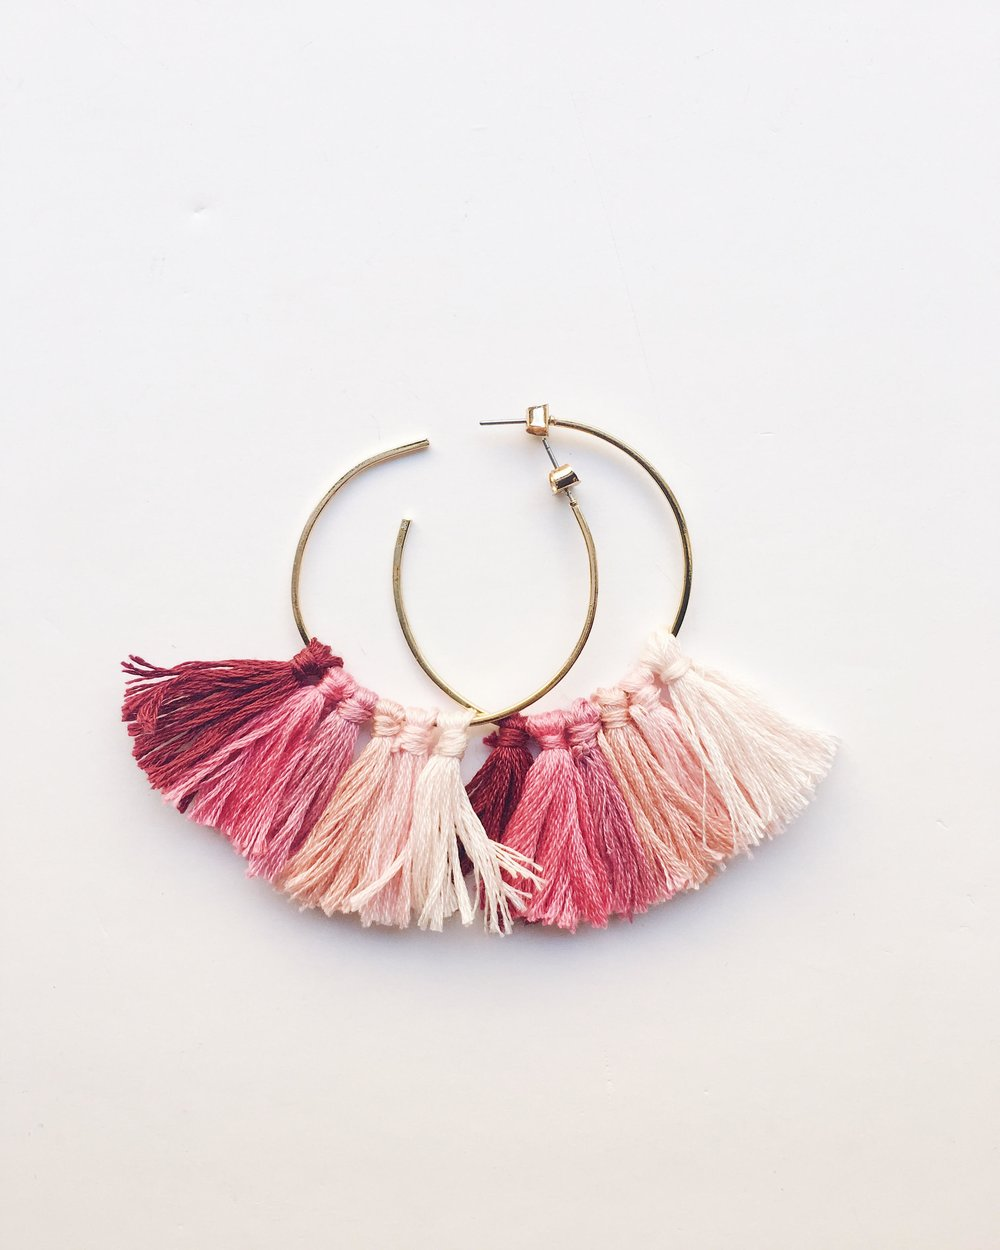 Tassel Earrings 1.jpg